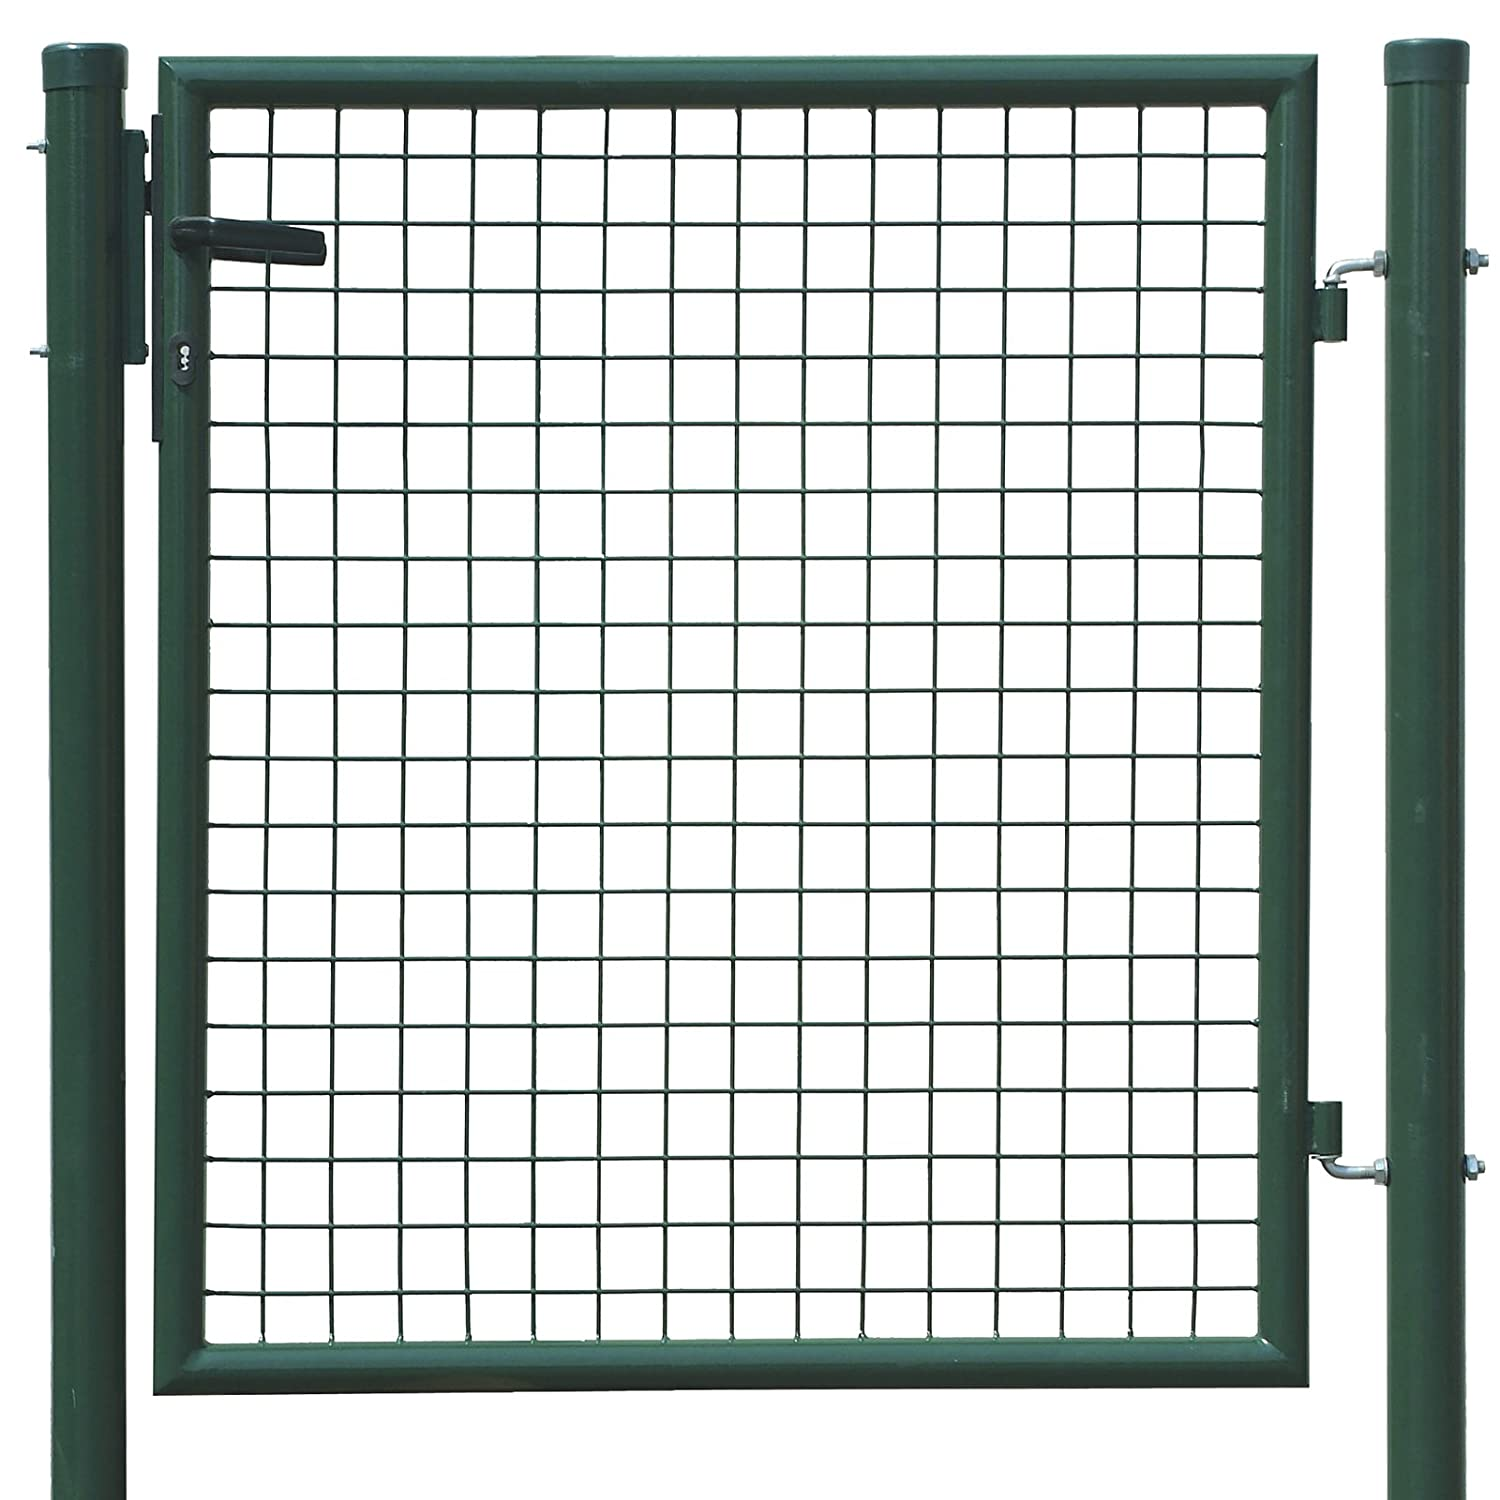 Grande cancelli per giardino in ferro fr49 pineglen for Cancelli bricoman